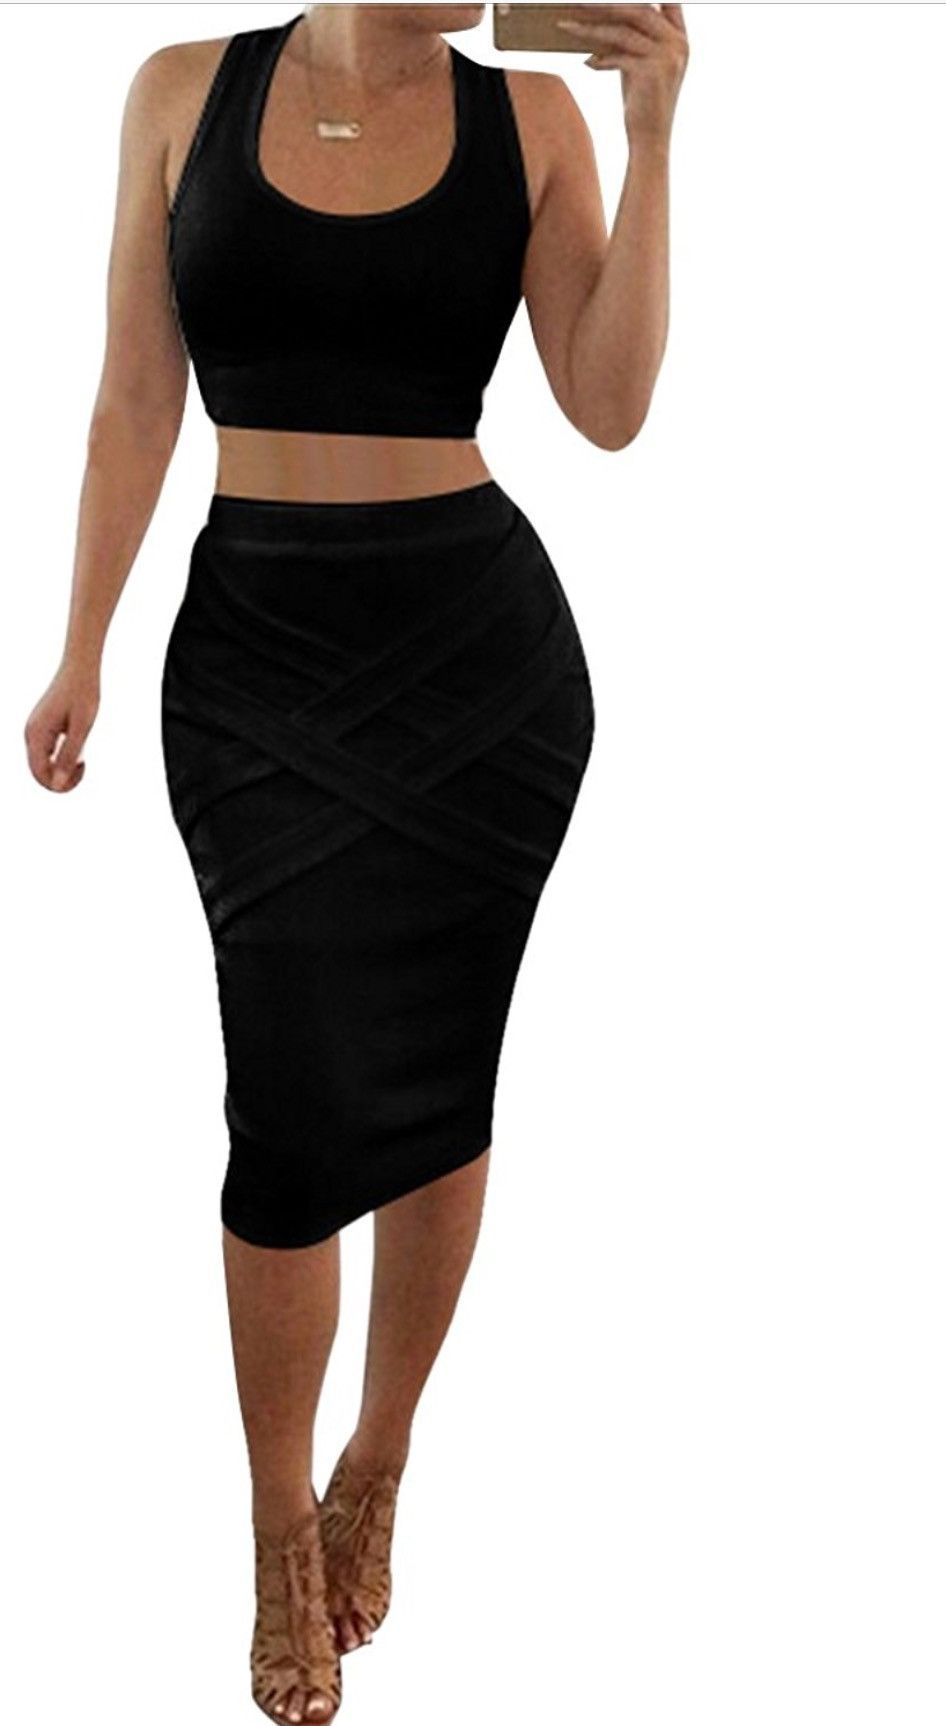 Black Crop Top Midi Skirt Two Piece Outfit + FREE SHIPPING